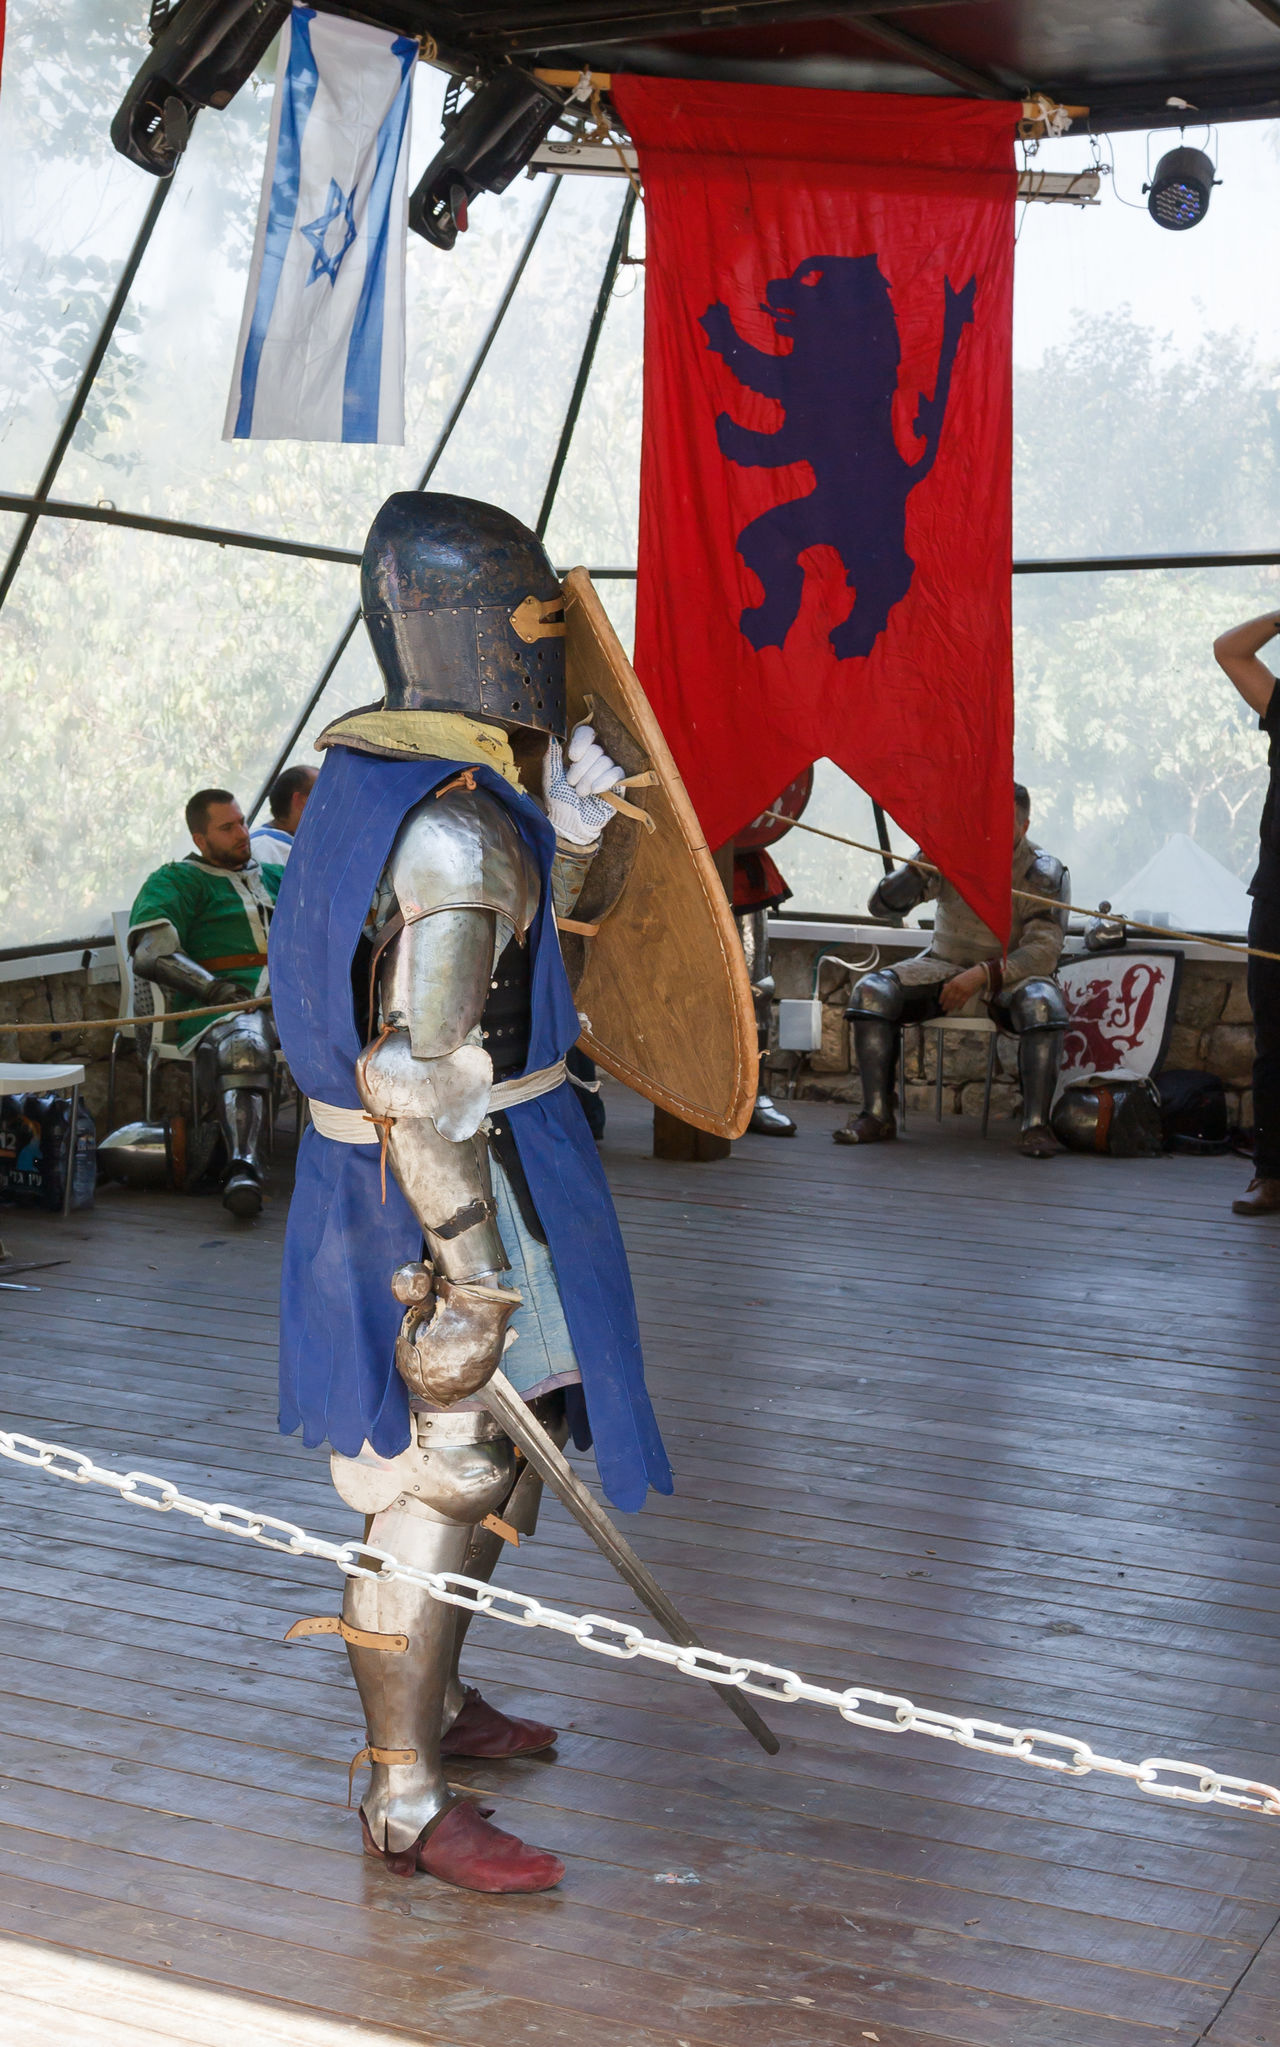 """Jerusalem, Israel, October 03, 2016: Member of the annual festival of """"Knights of Jerusalem"""" dressed as a knight standing in the ring ready to fight in Jerusalem, Israel Ancient Annual Attraction Christian Citizen Decorations Dressed Event Famous Festival History Holy Israel Jerusalem Knight  Land Medieval Member Old Performance Performs Photographer Pose Sword Tradition"""